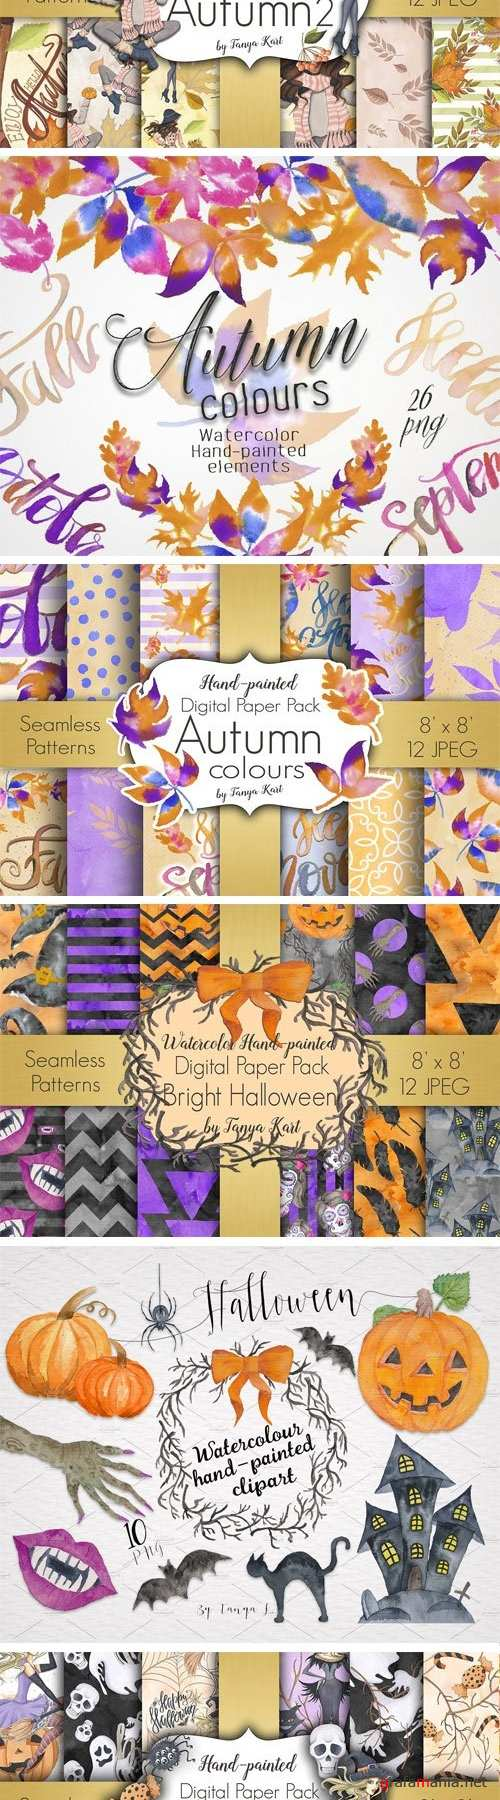 Fall for Autumn - Watercolor Clipart - 1741003